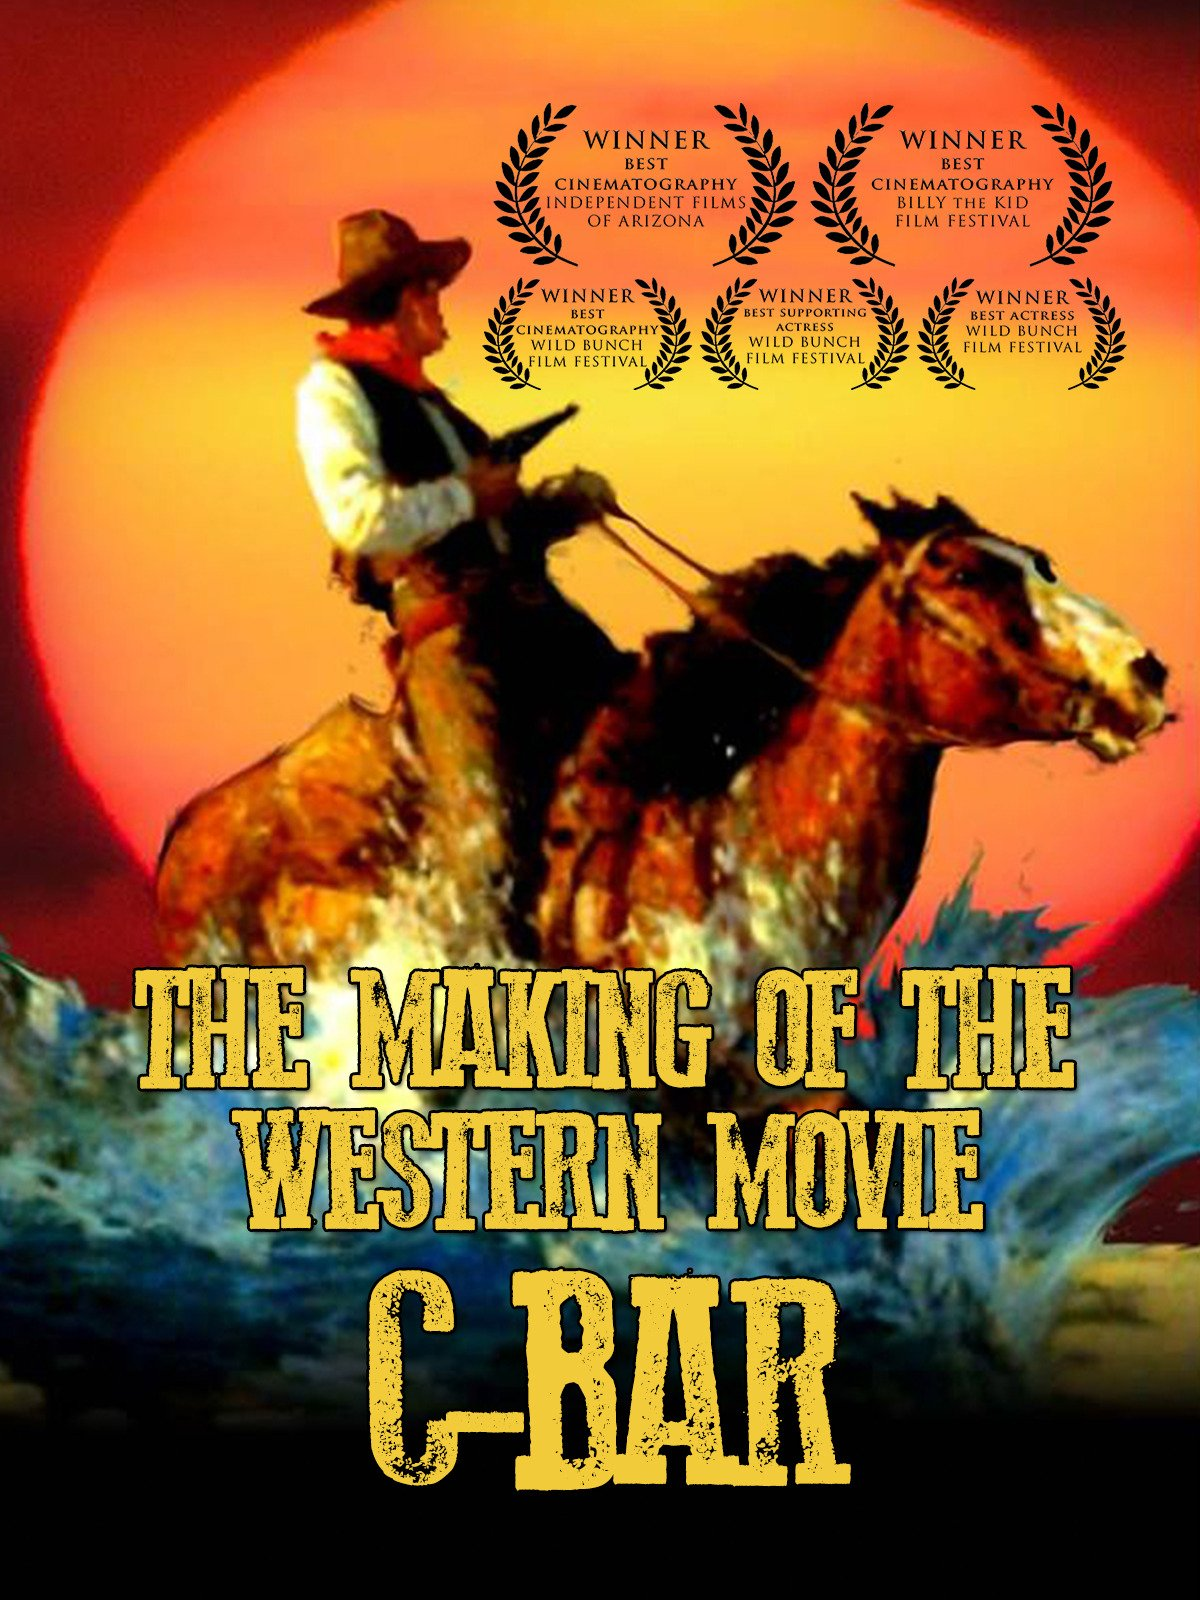 The Making of the Western Movie C-Bar